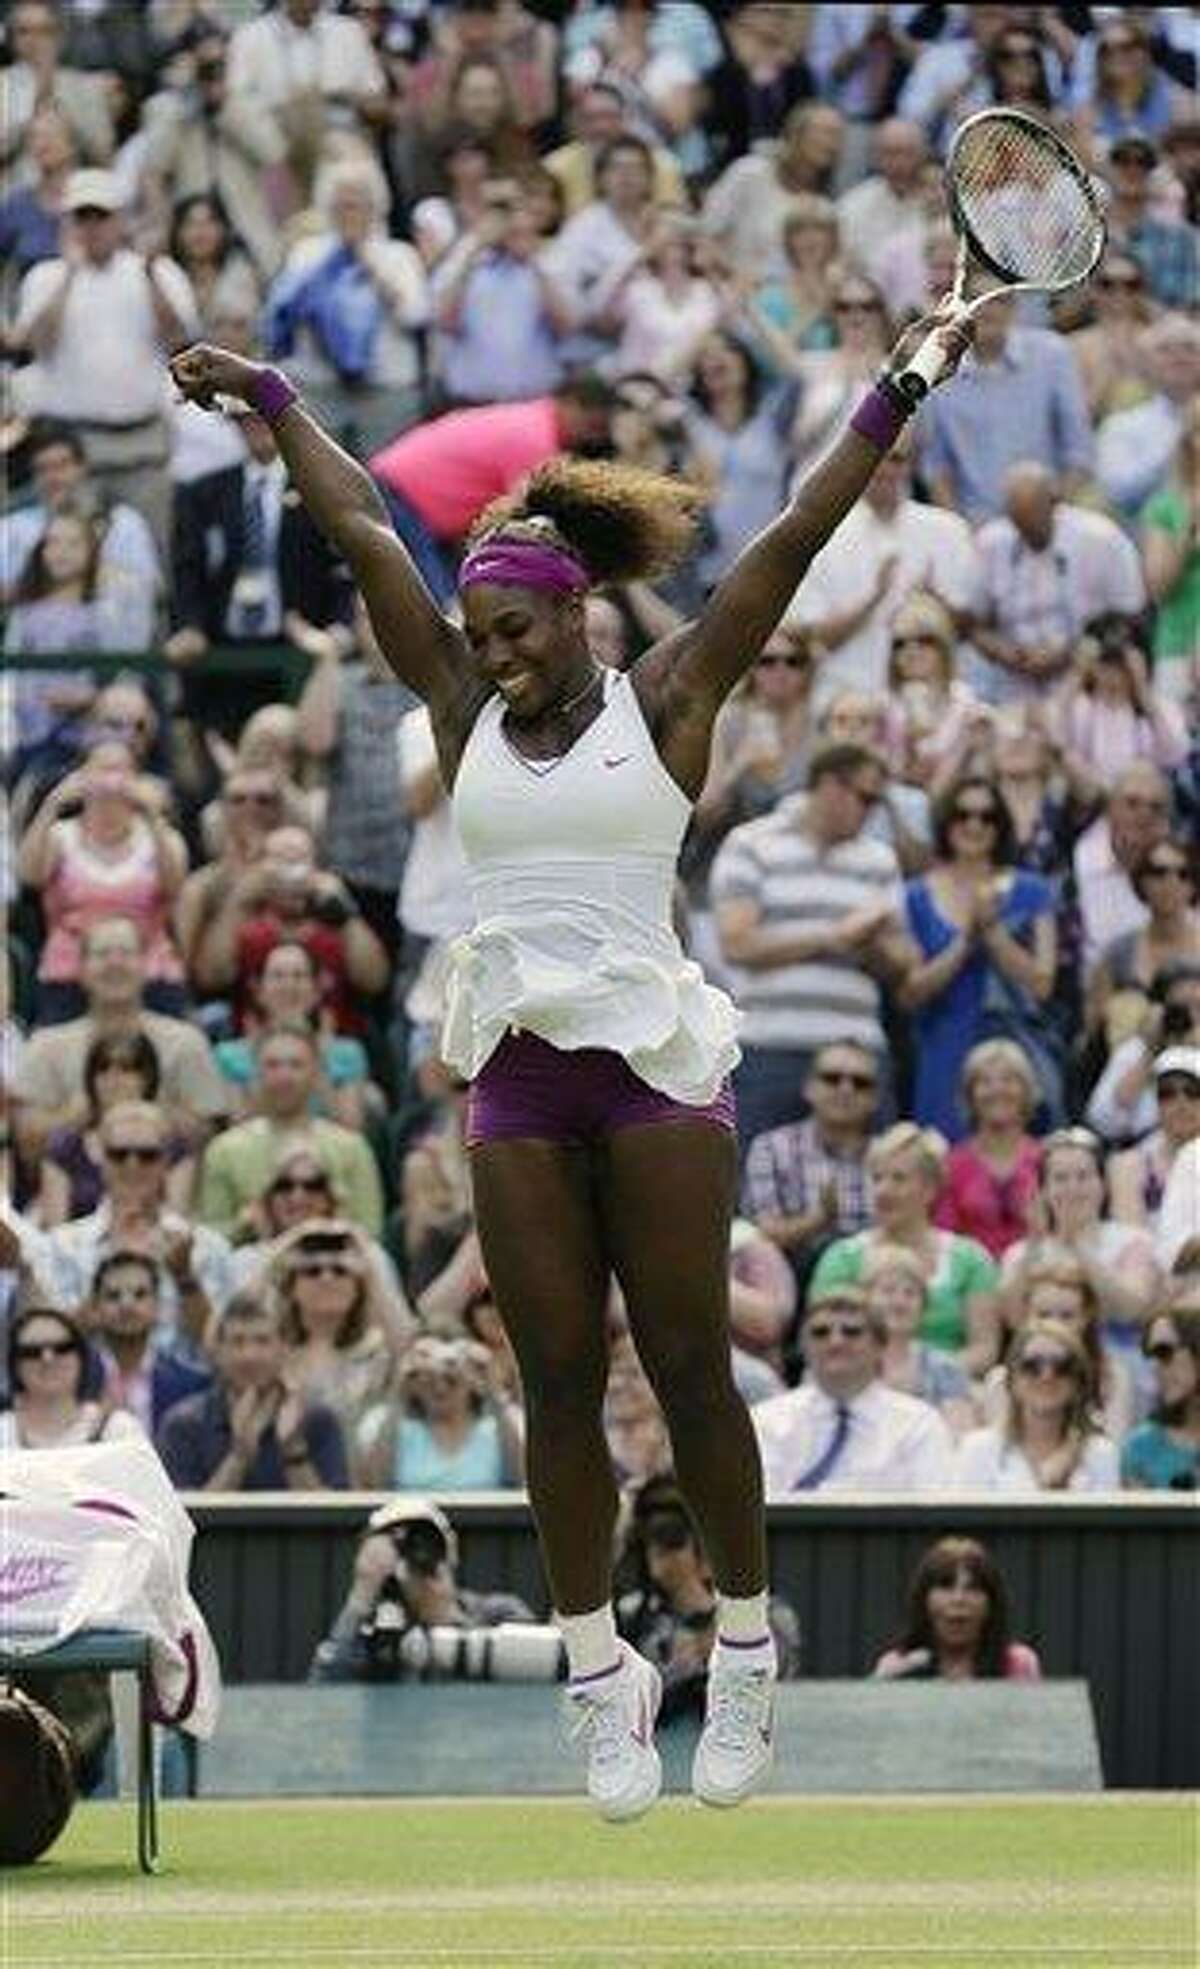 Serena Williams of the United States reacts after defeating Victoria Azarenka of Belarus during a semifinals match at the All England Lawn Tennis Championships at Wimbledon, England, Thursday, July 5, 2012. (AP Photo/Anja Niedringhaus)